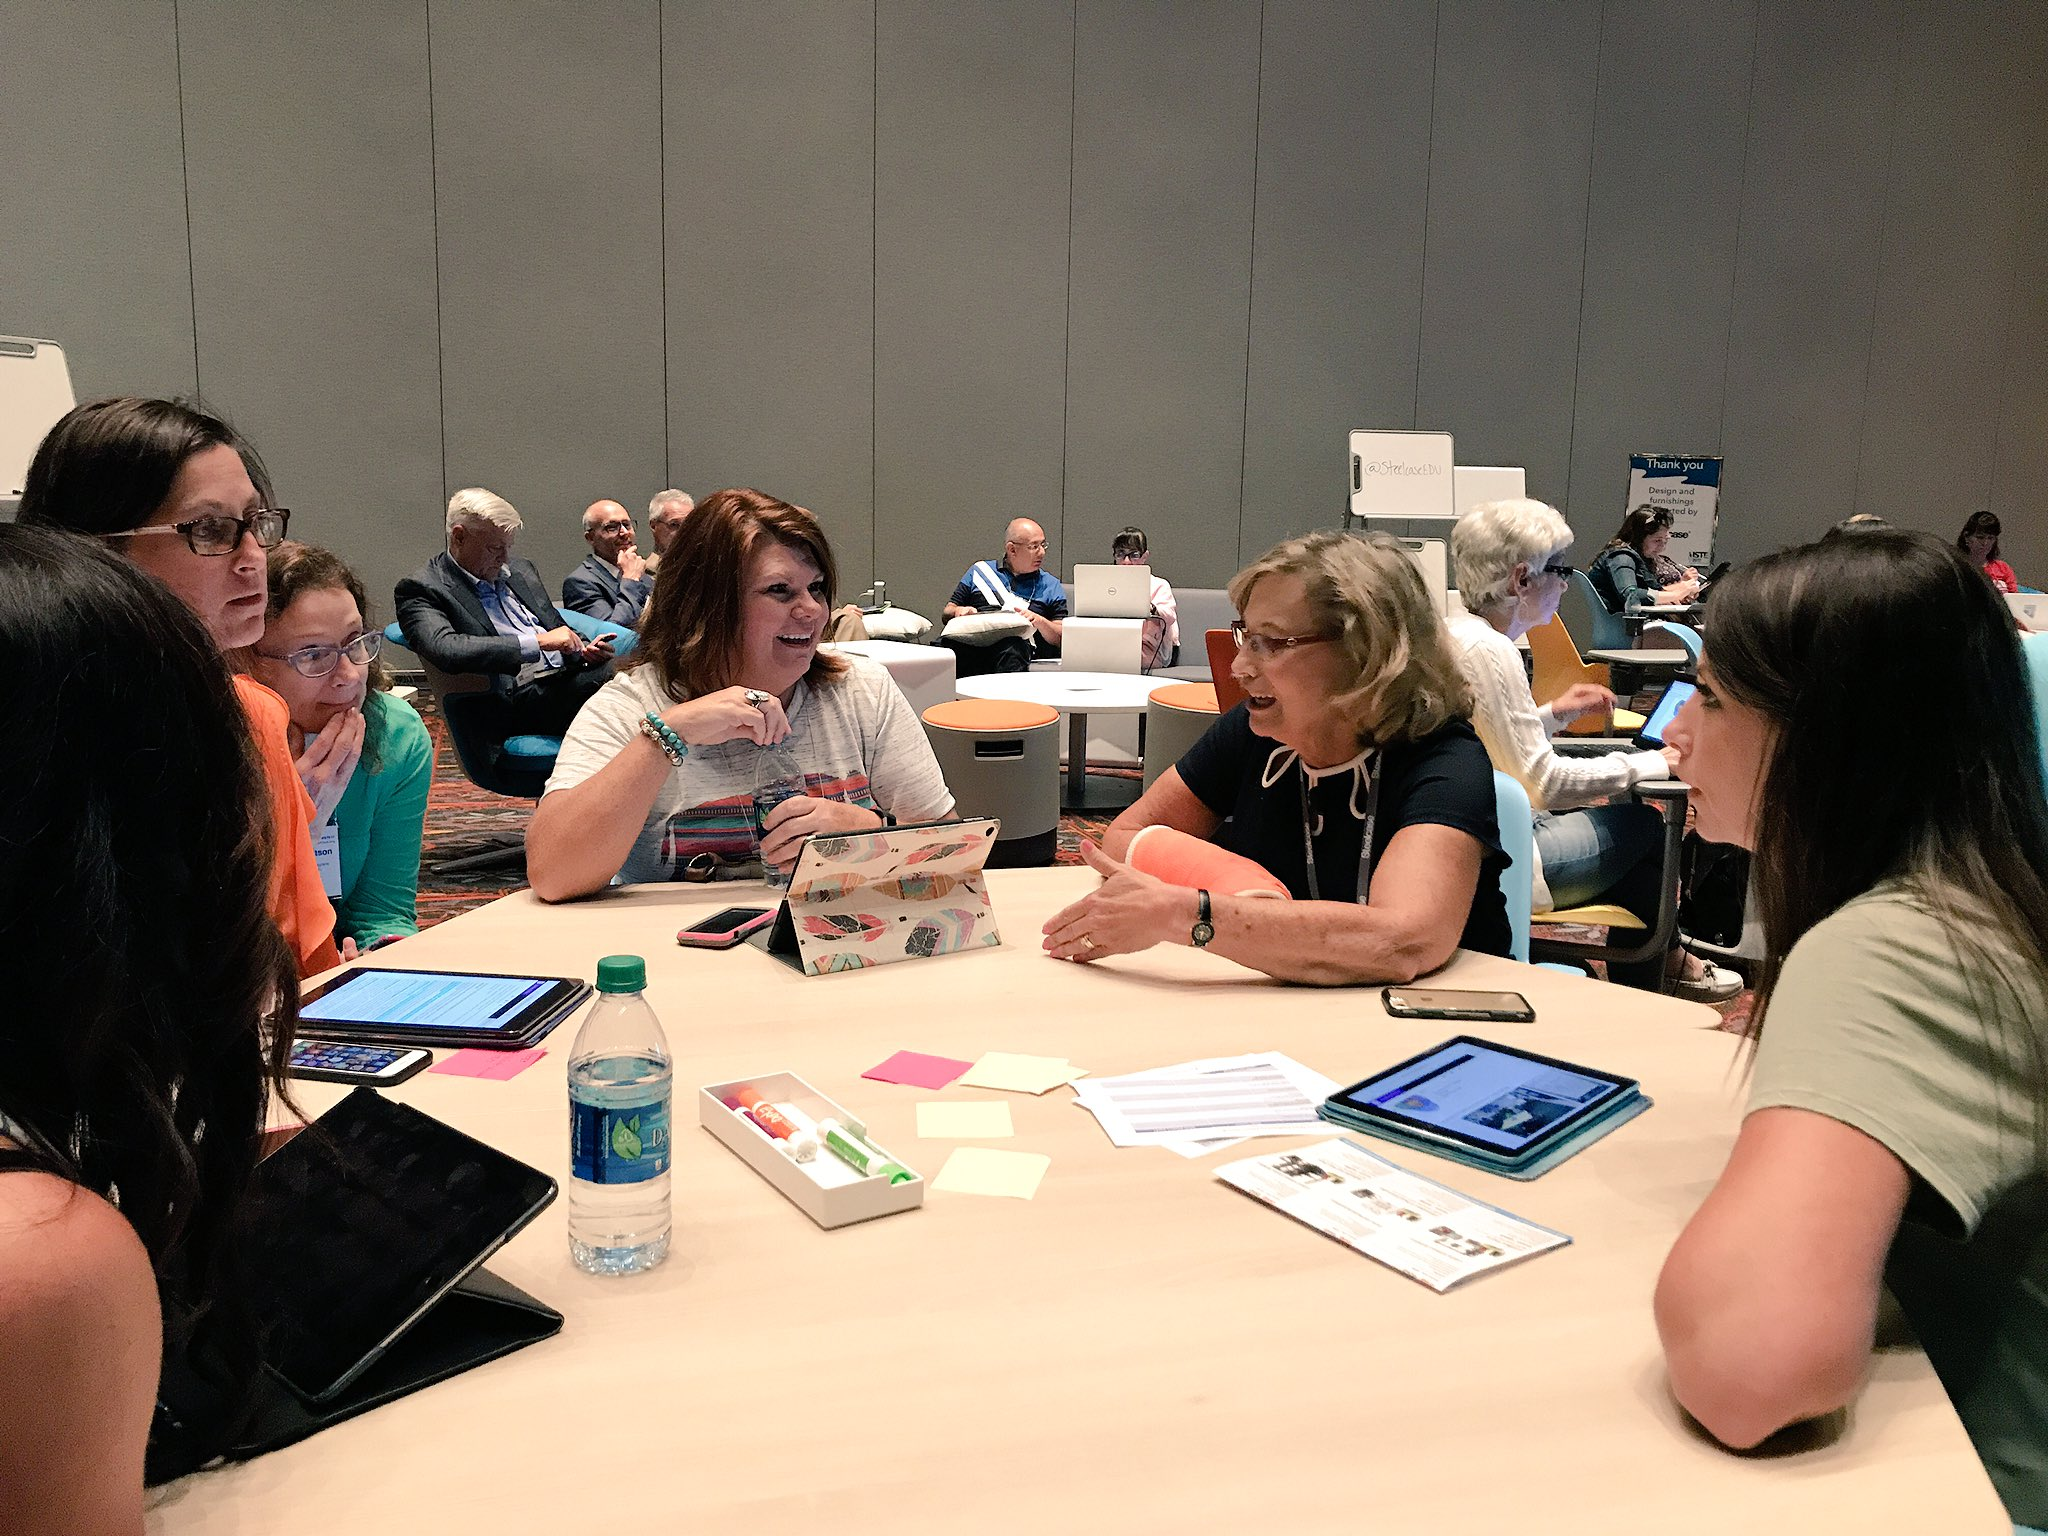 """SteelcaseEDU  """"Let your students own their learning."""" Dr. Julie Marshall speaking at our #ISTE17 session. https://t.co/CUjdBl9GmY  6/26/17, 3:37 PM"""